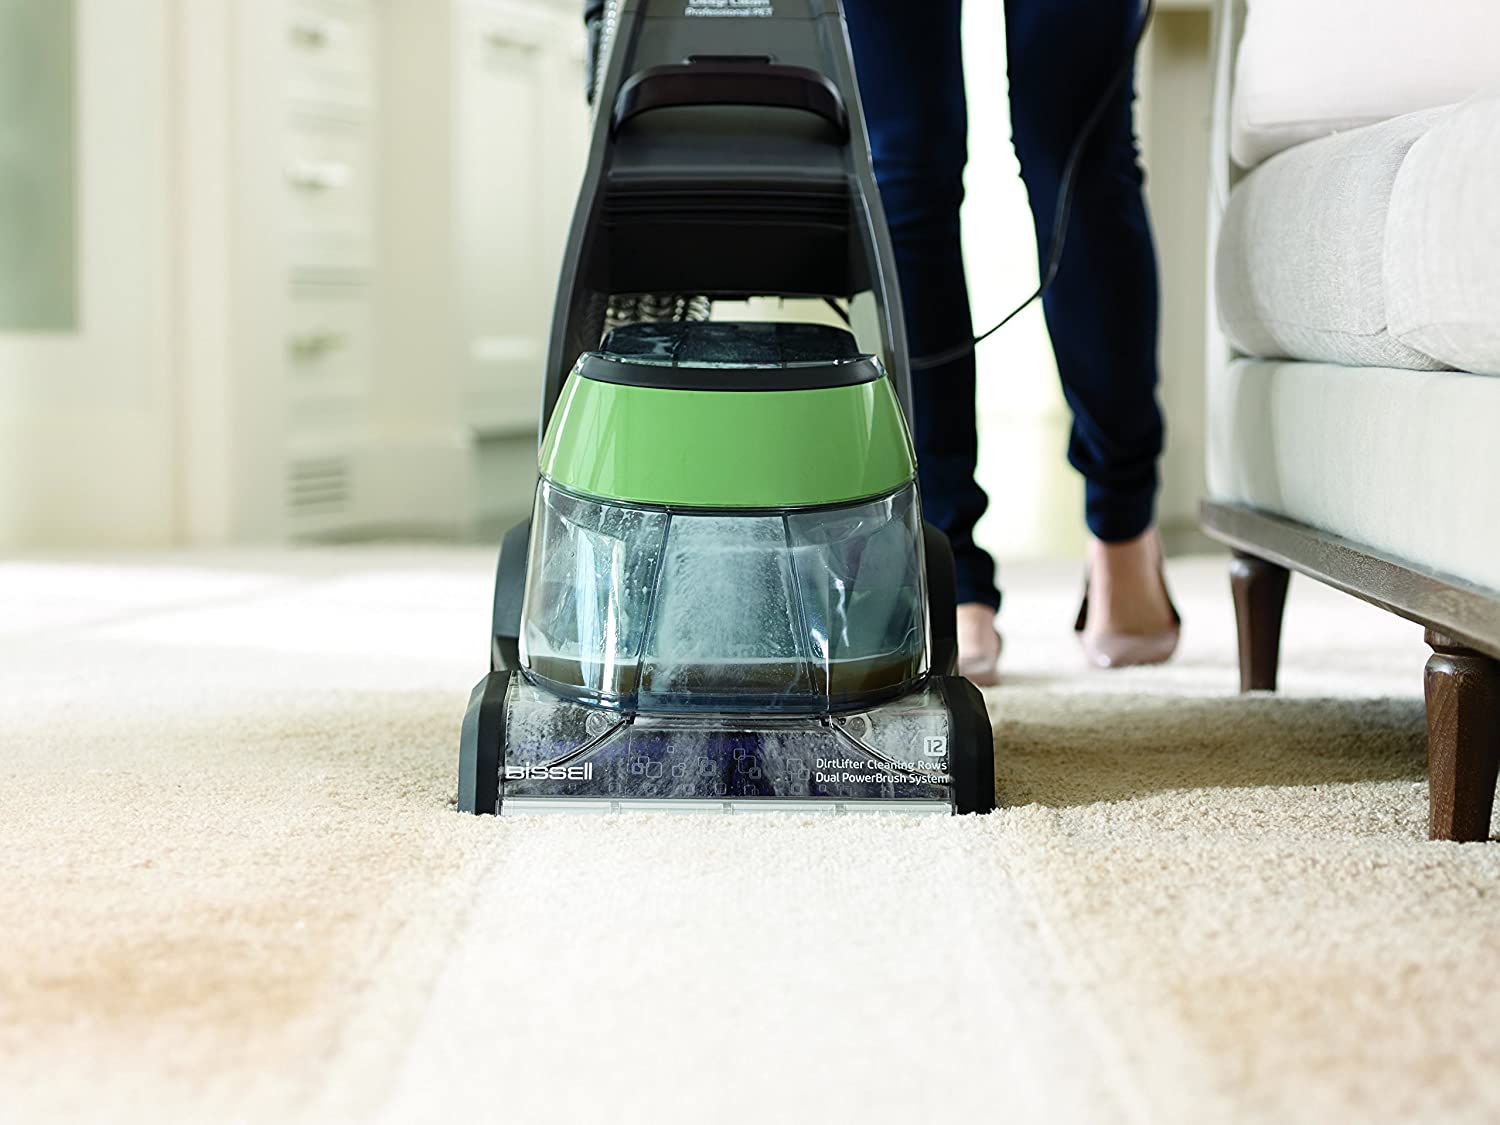 Bissell Deepclean Professional Pet Carpet Cleaner 17n4p Sweeper Diagram And Parts List For Carpetfloor Home Kitchen